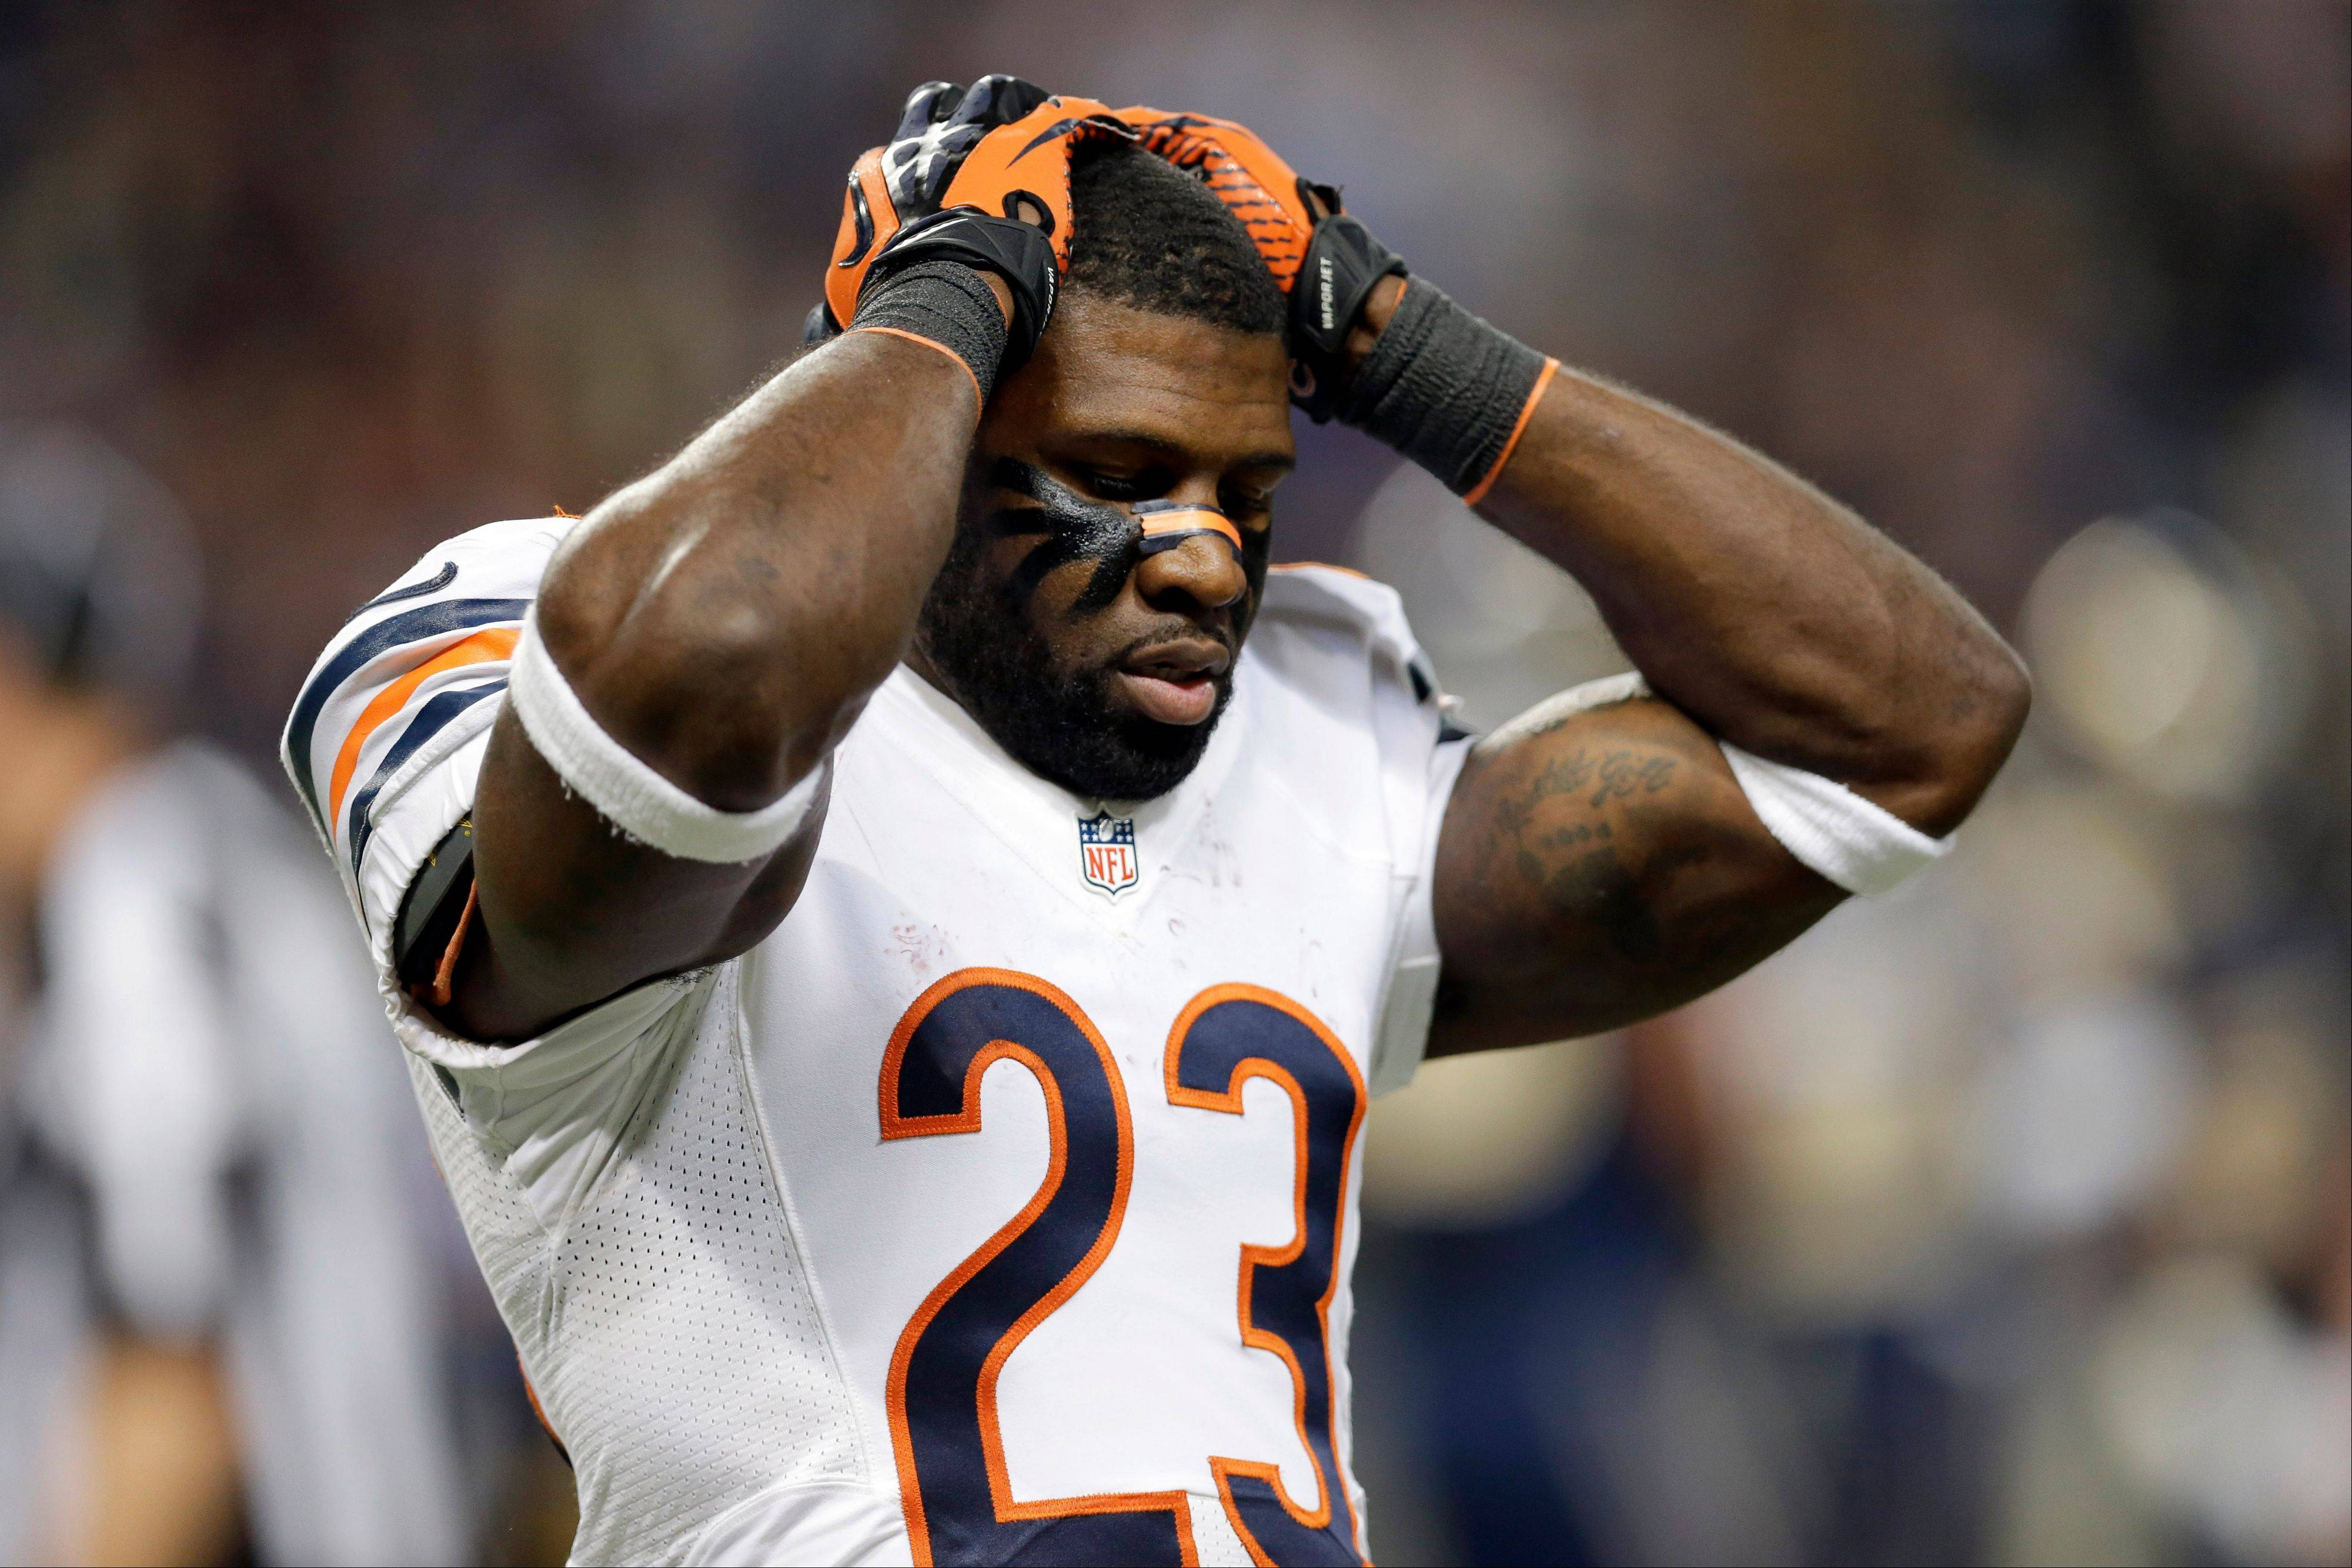 Chicago Bears' Devin Hester reacts after a punt he returned for an apparent touchdown was called back because of an offensive holding penalty during the fourth quarter of an NFL football game against the St. Louis Rams on Sunday, Nov. 24, 2013, in St. Louis.